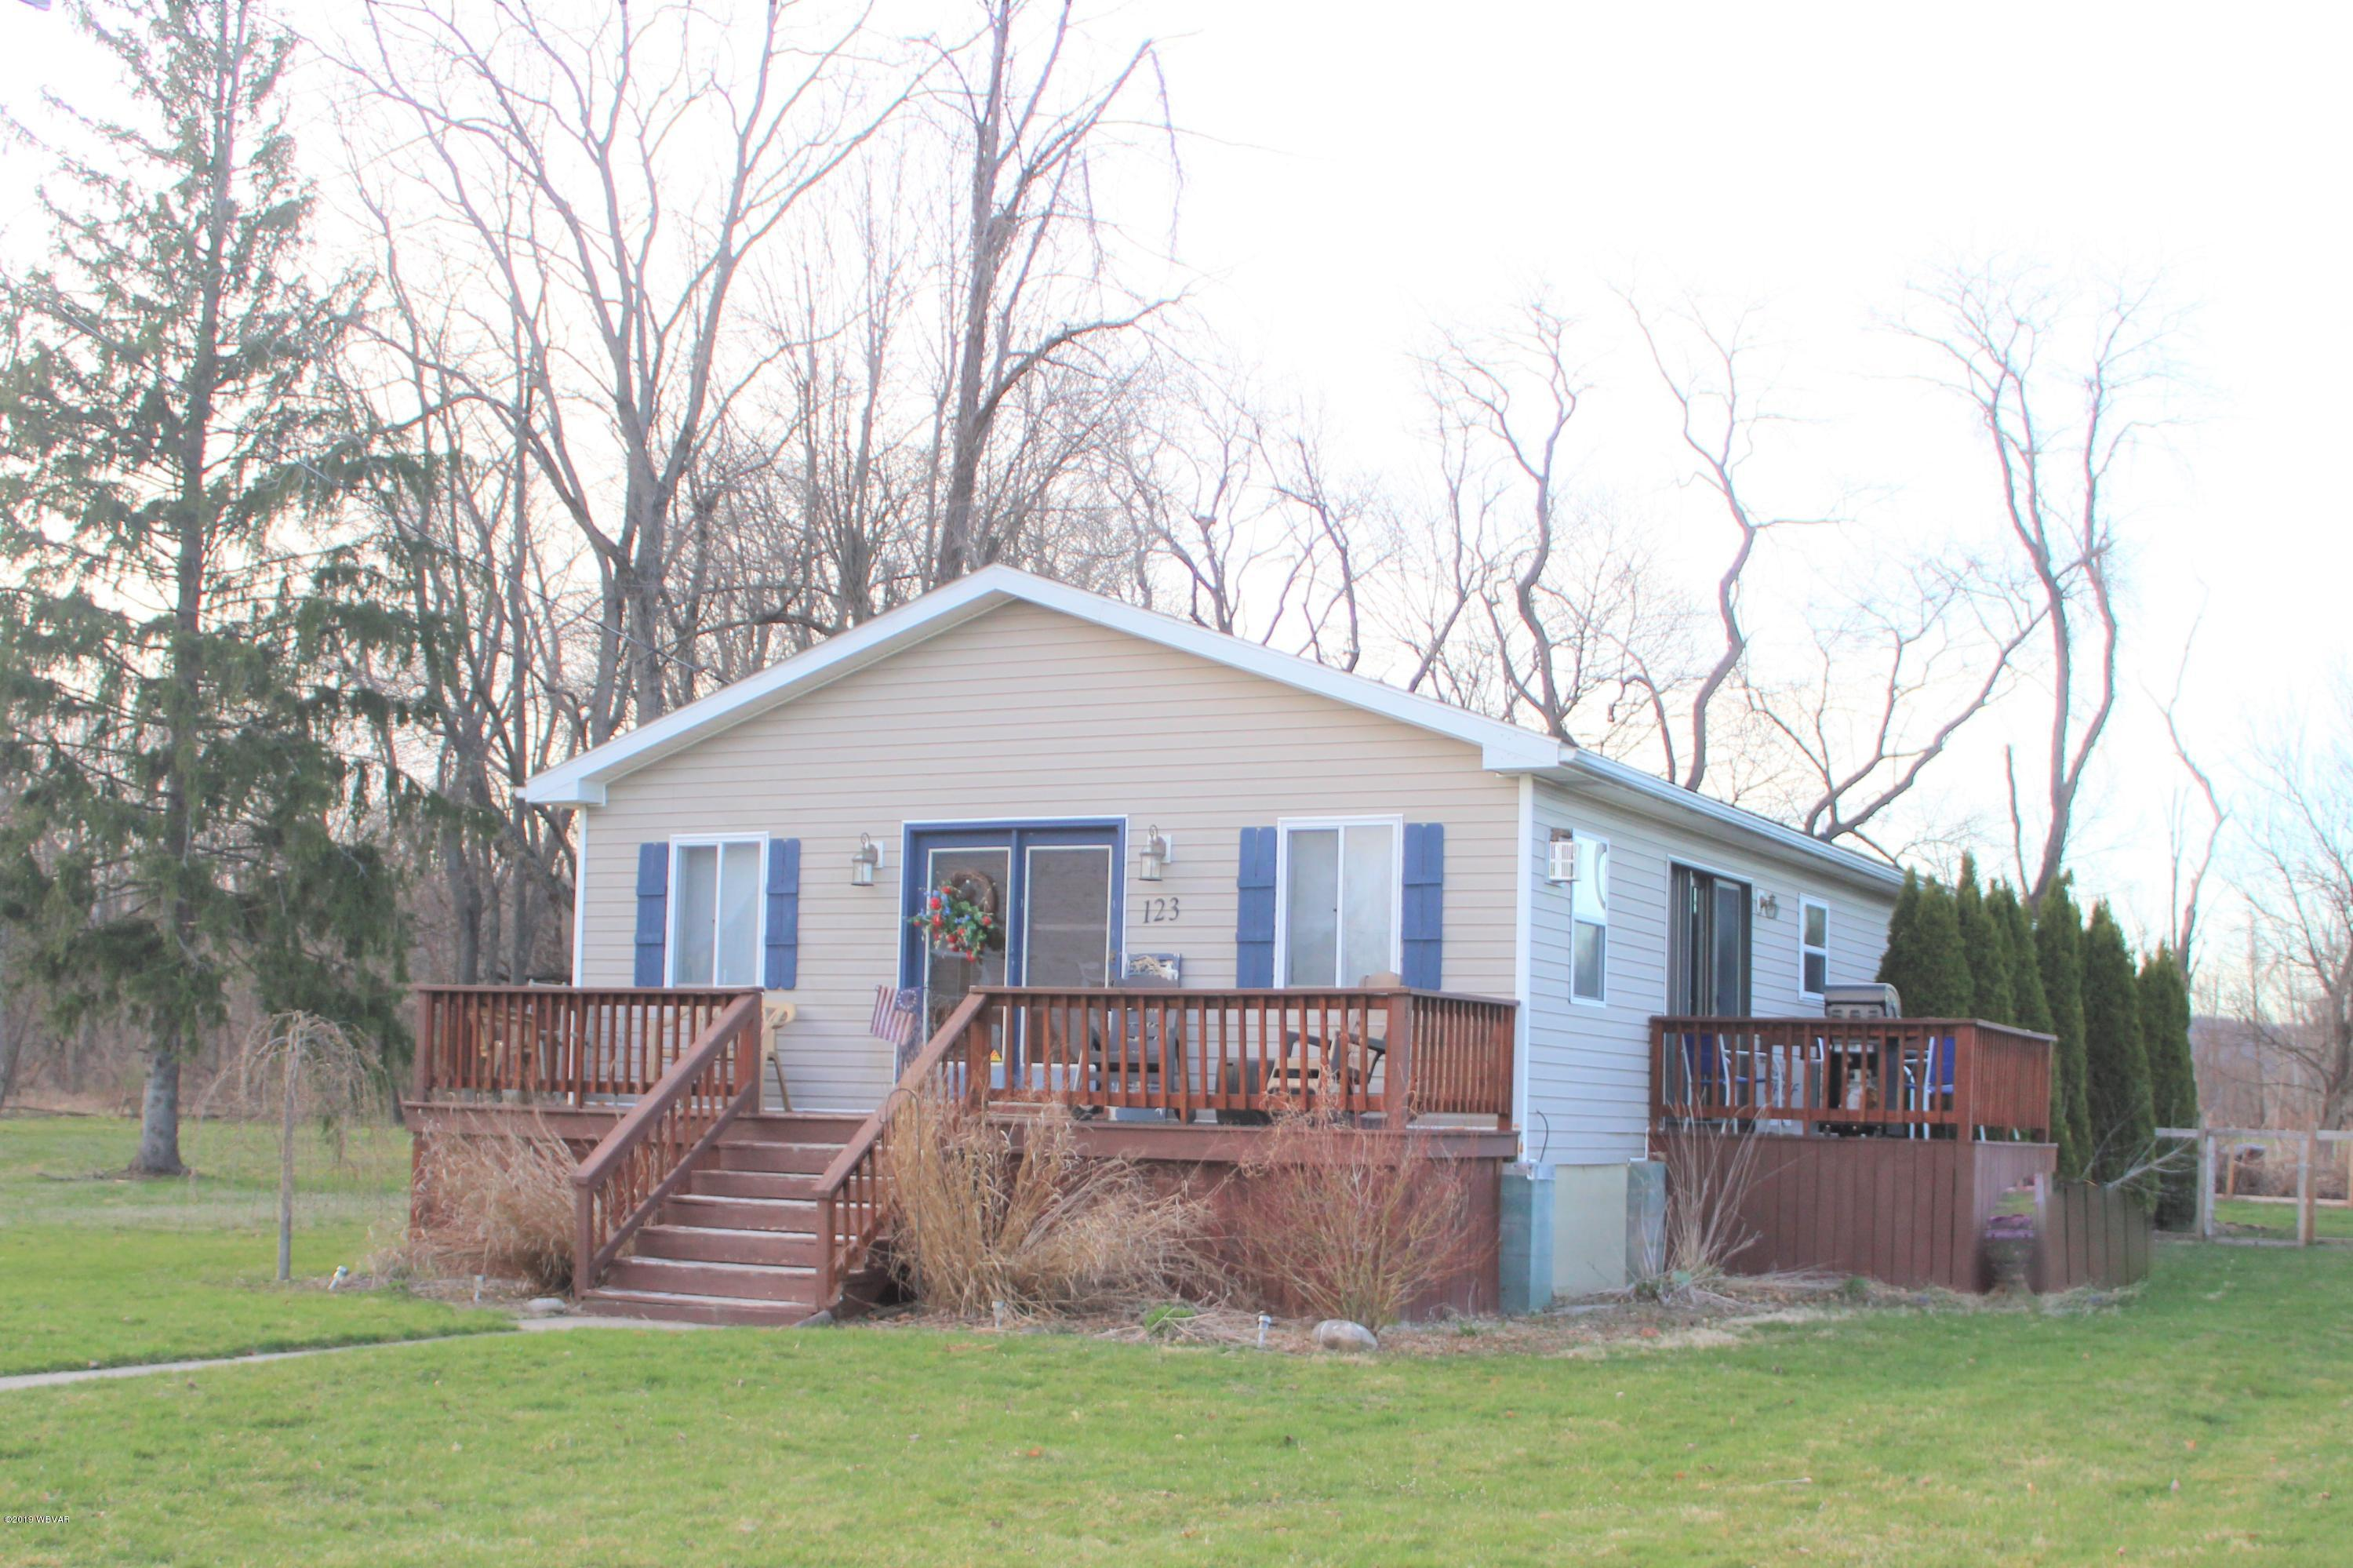 123 GREGG RUN ROAD,Hughesville,PA 17737,3 Bedrooms Bedrooms,2 BathroomsBathrooms,Residential,GREGG RUN,WB-86957